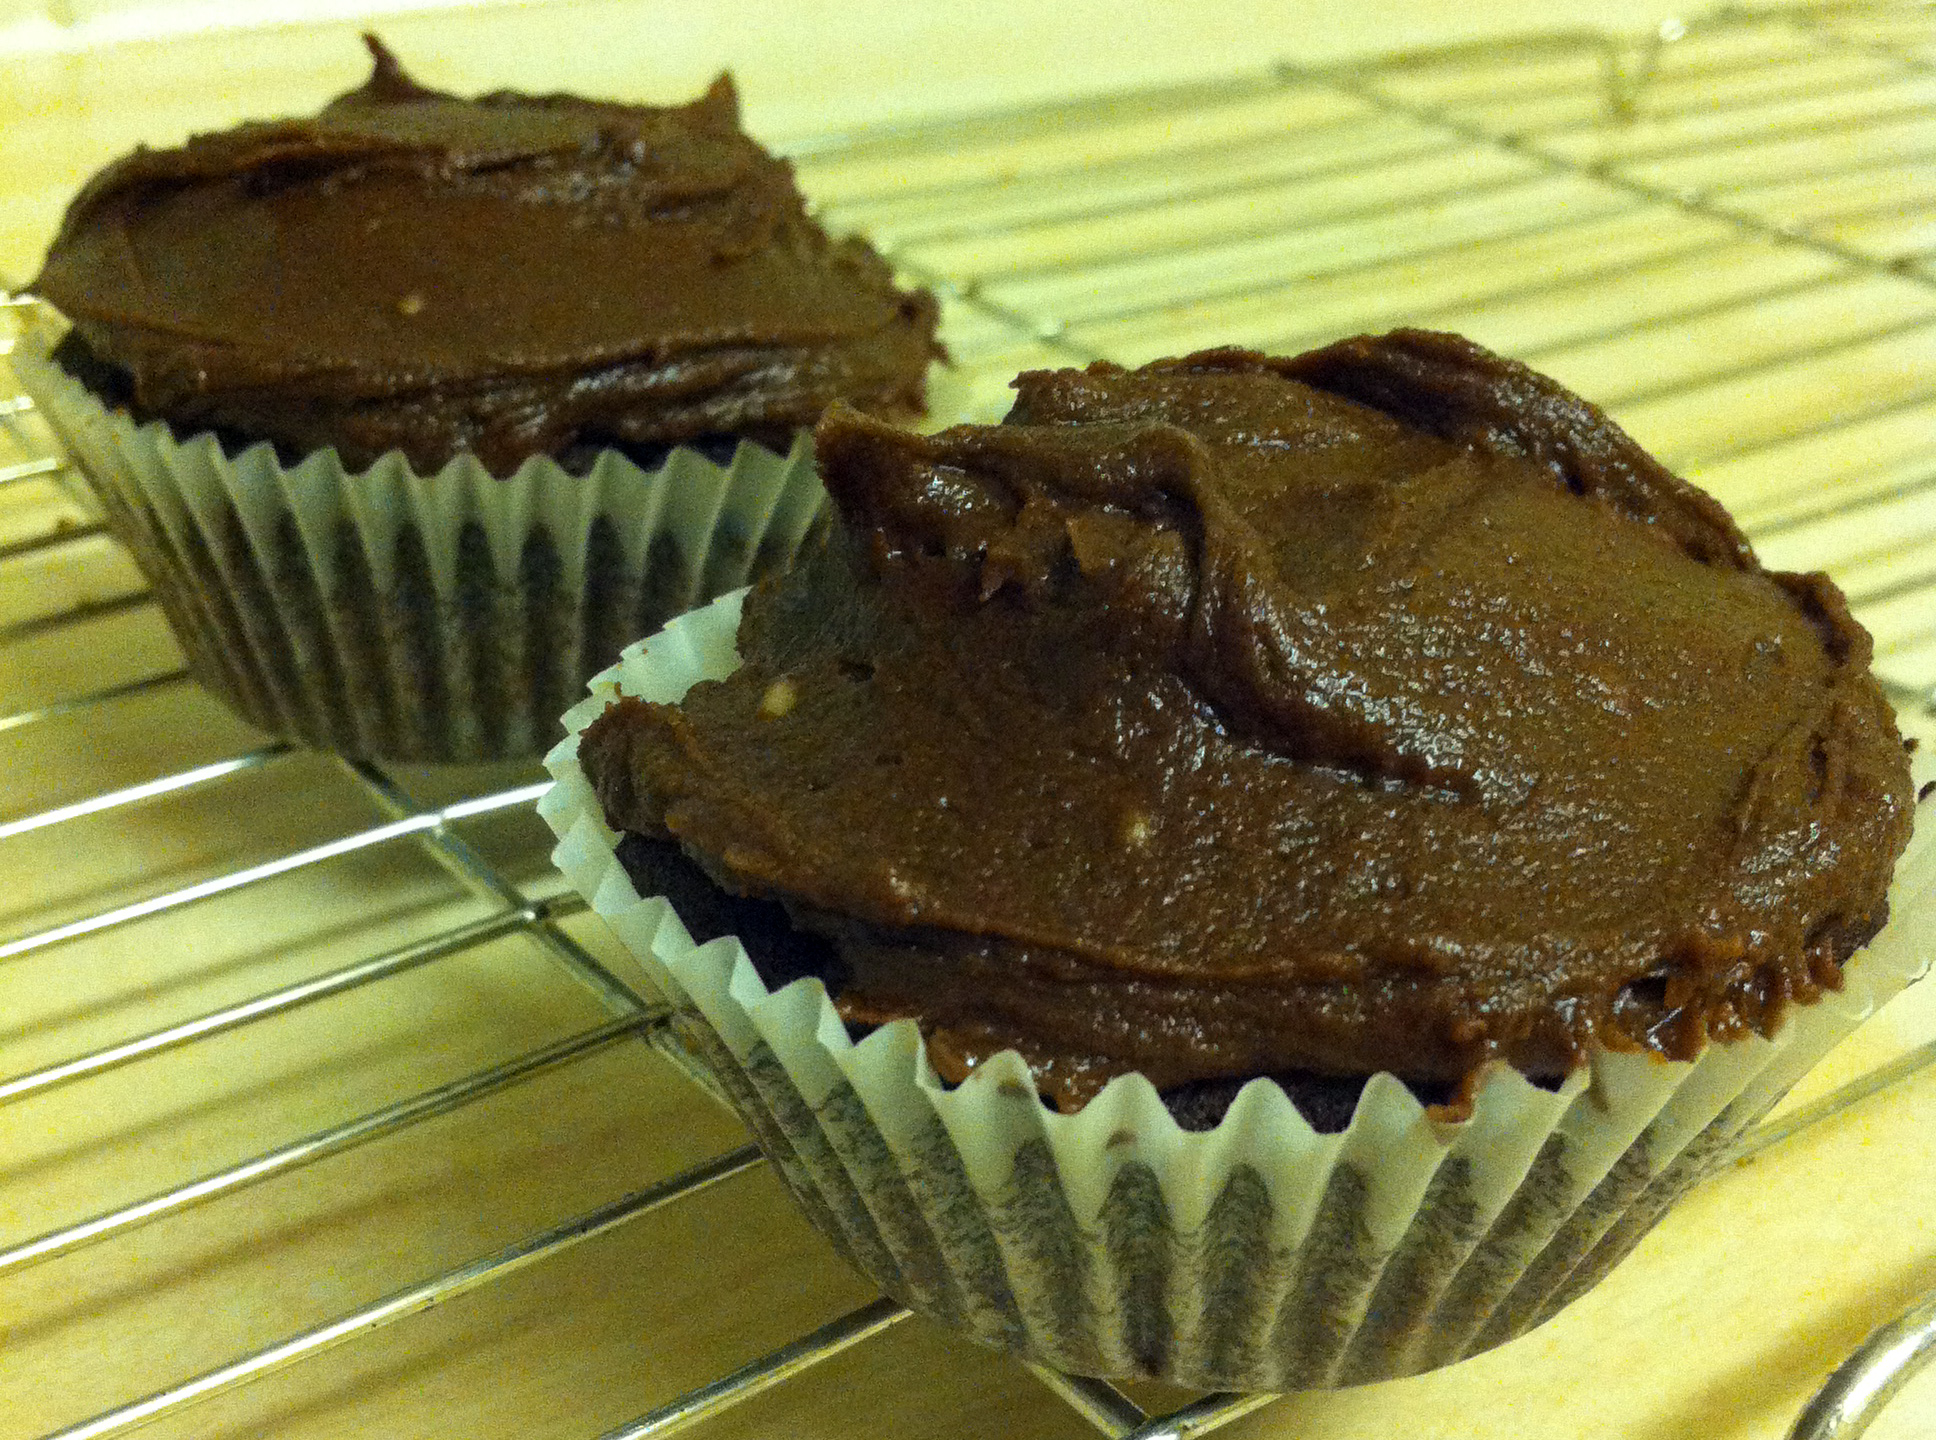 Chocolate cakes with chocolate fudge topping